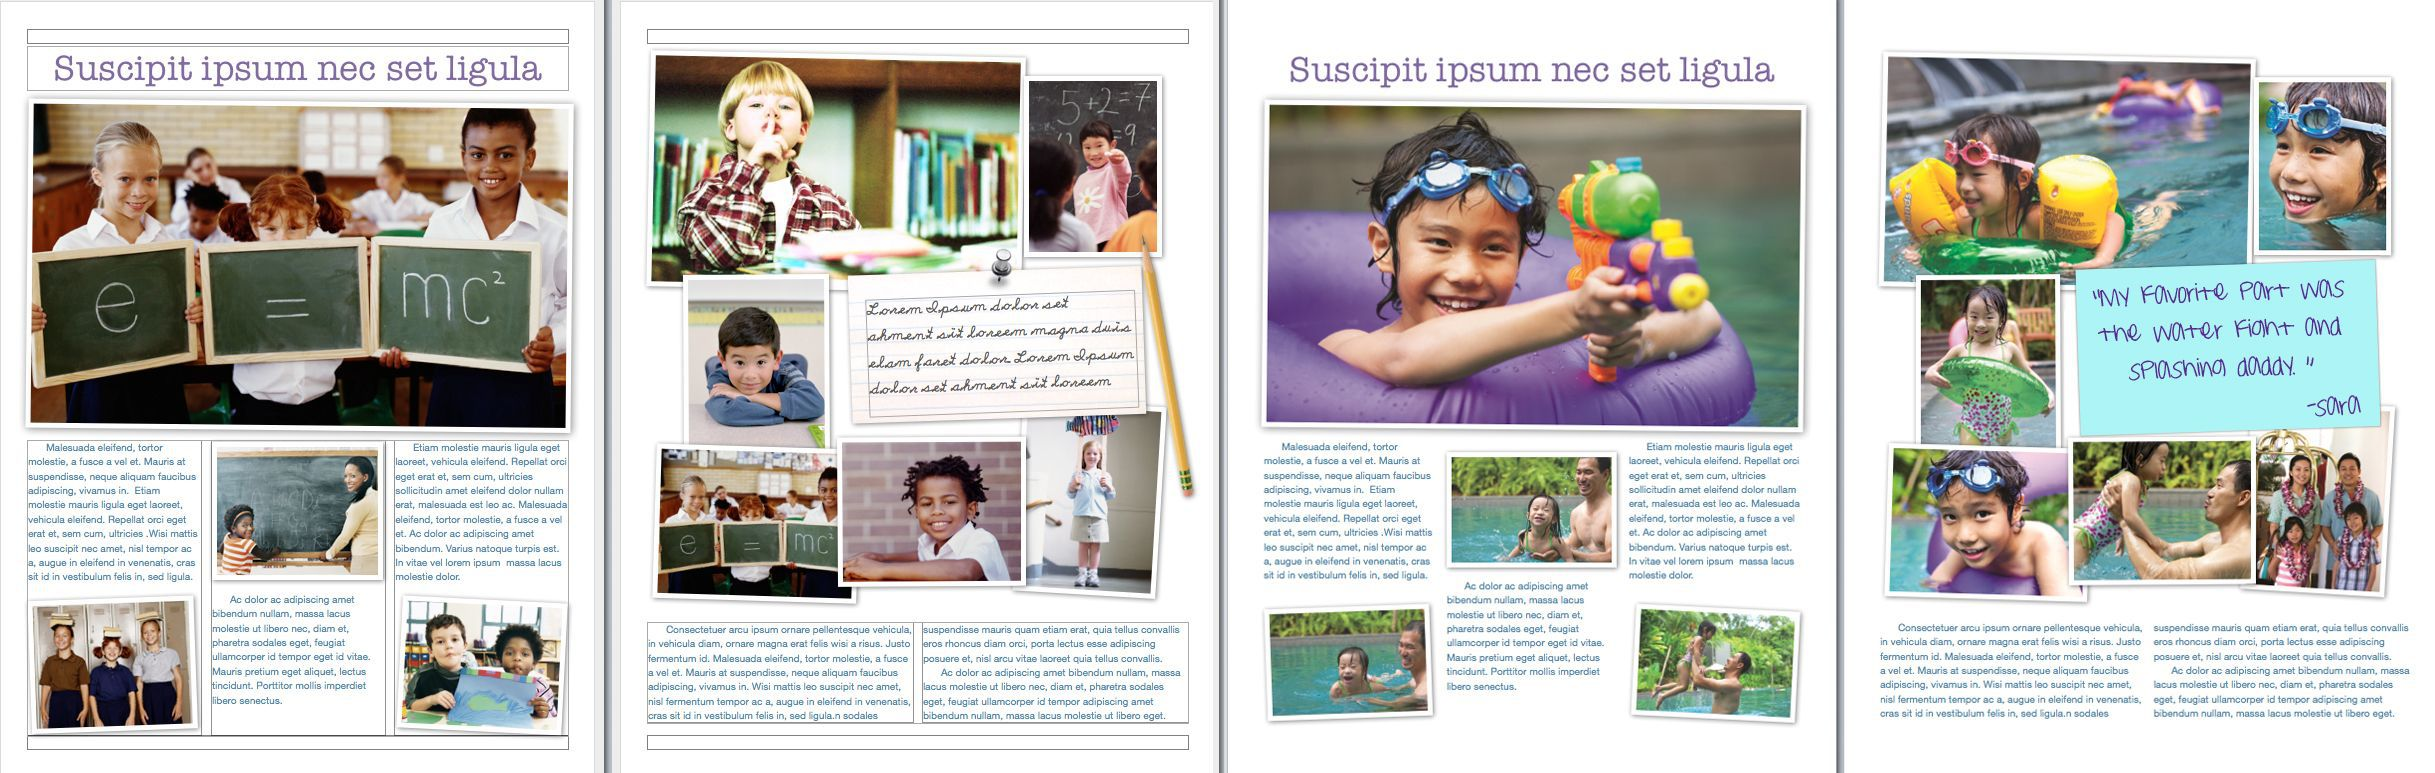 005 Breathtaking Magazine Template For Microsoft Word Concept  Layout Design DownloadFull